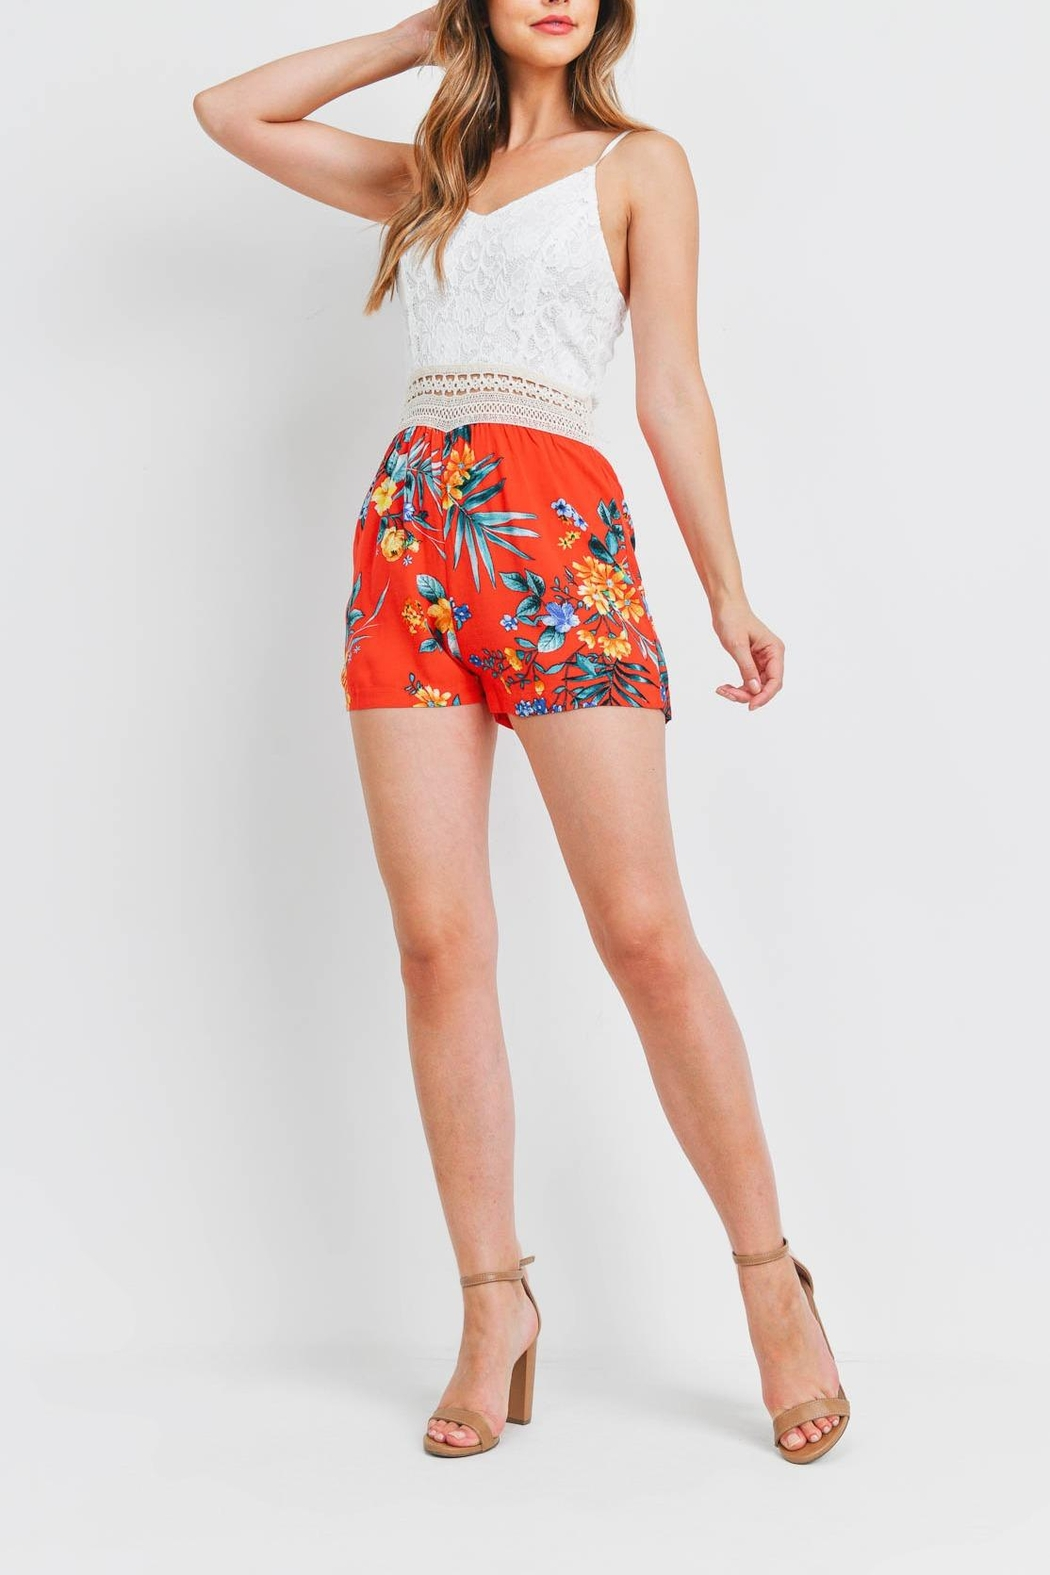 Riah Fashion White-Red-Flower-Romper - Back Cropped Image